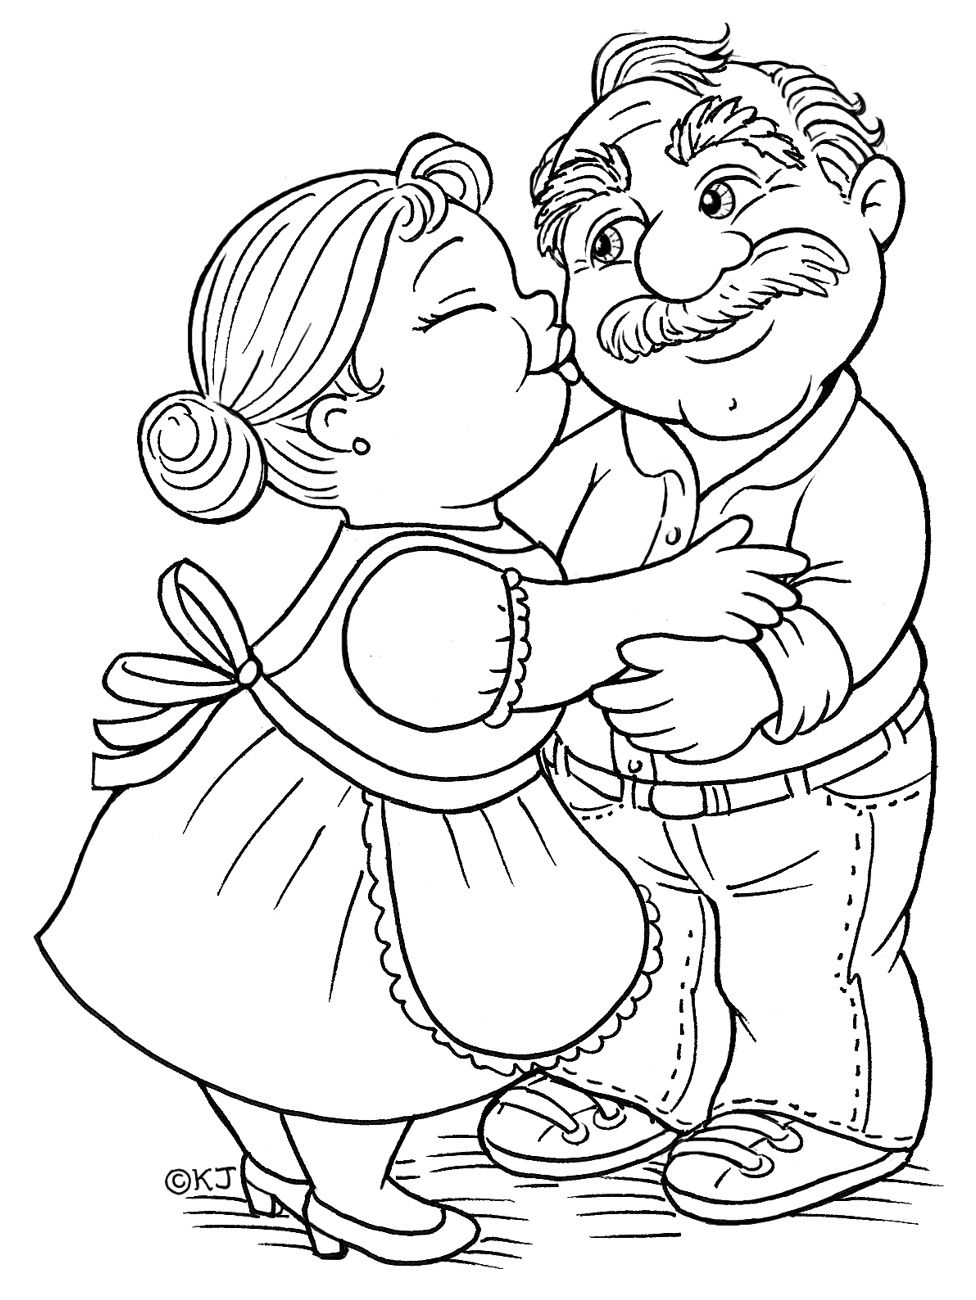 Pin By Cristian Cotun On Digistamp Coloring Pages Coloring Books Digi Stamps